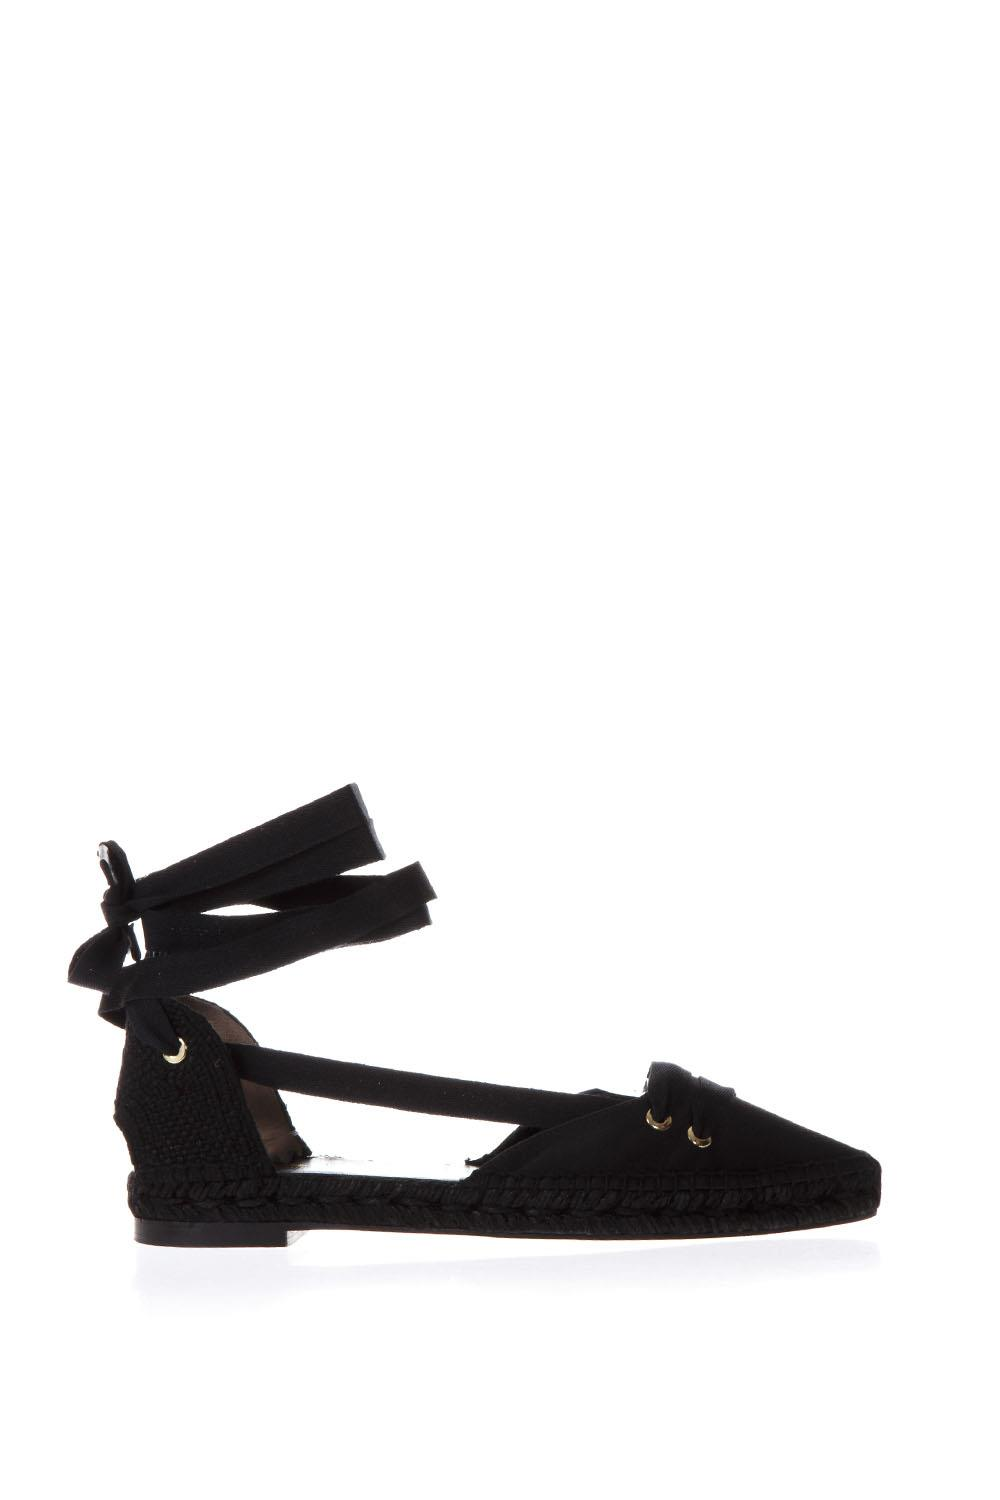 6bb0f0b73c4f BLACK SATIN AND JUTA ESPADRILLES SS18 - CASTANER BY MANOLO BLAHNIK - Boutique  Galiano